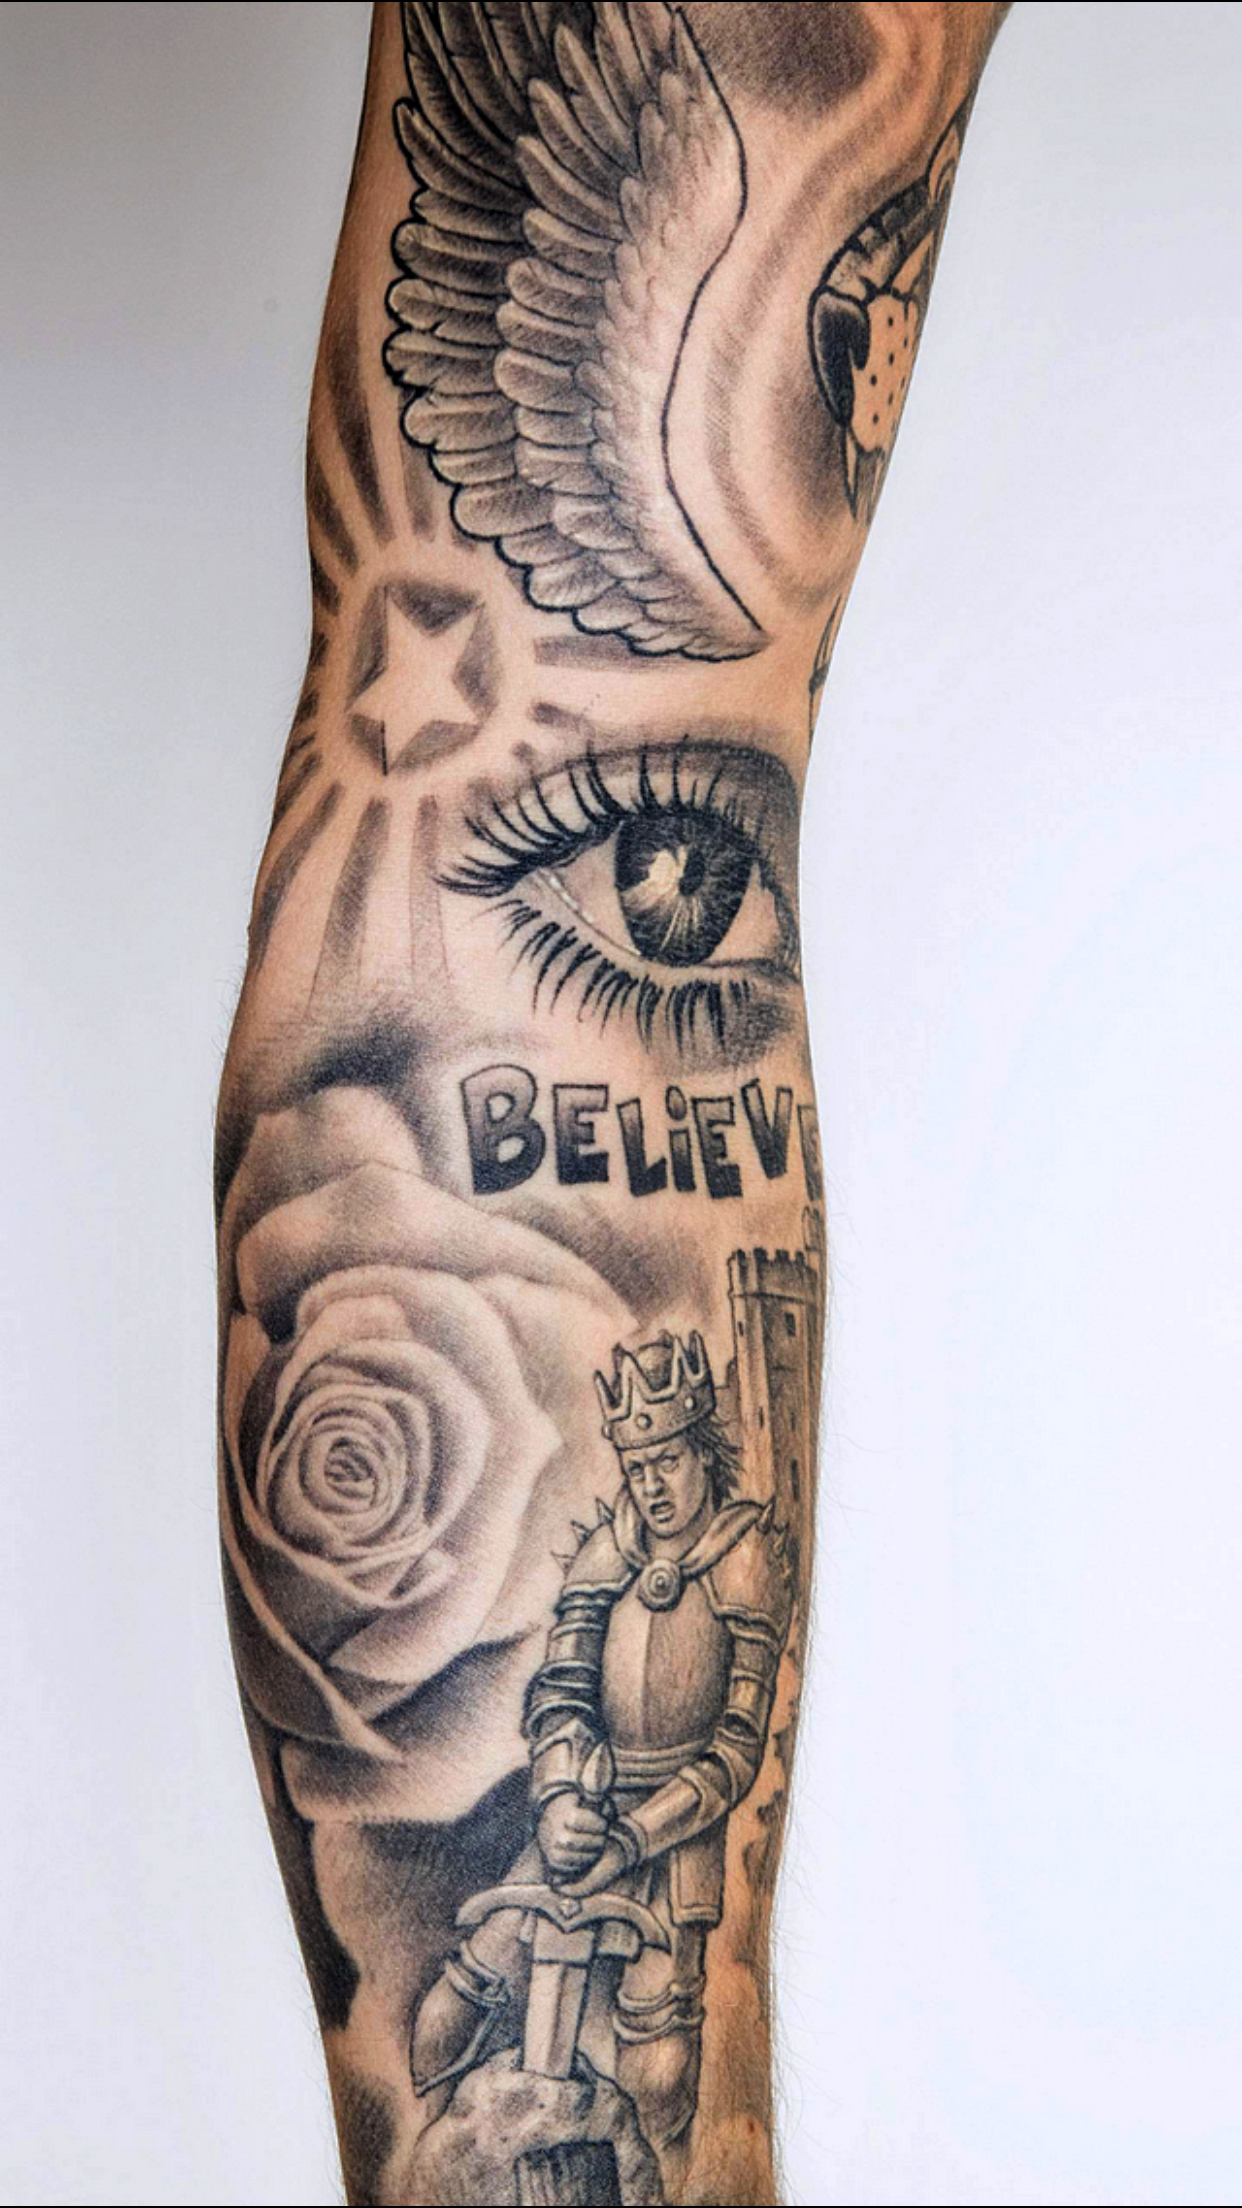 Pin By Jamyahhh On Justin Bieber Tattoos For Guys Justin Bieber Tattoos Tattoos